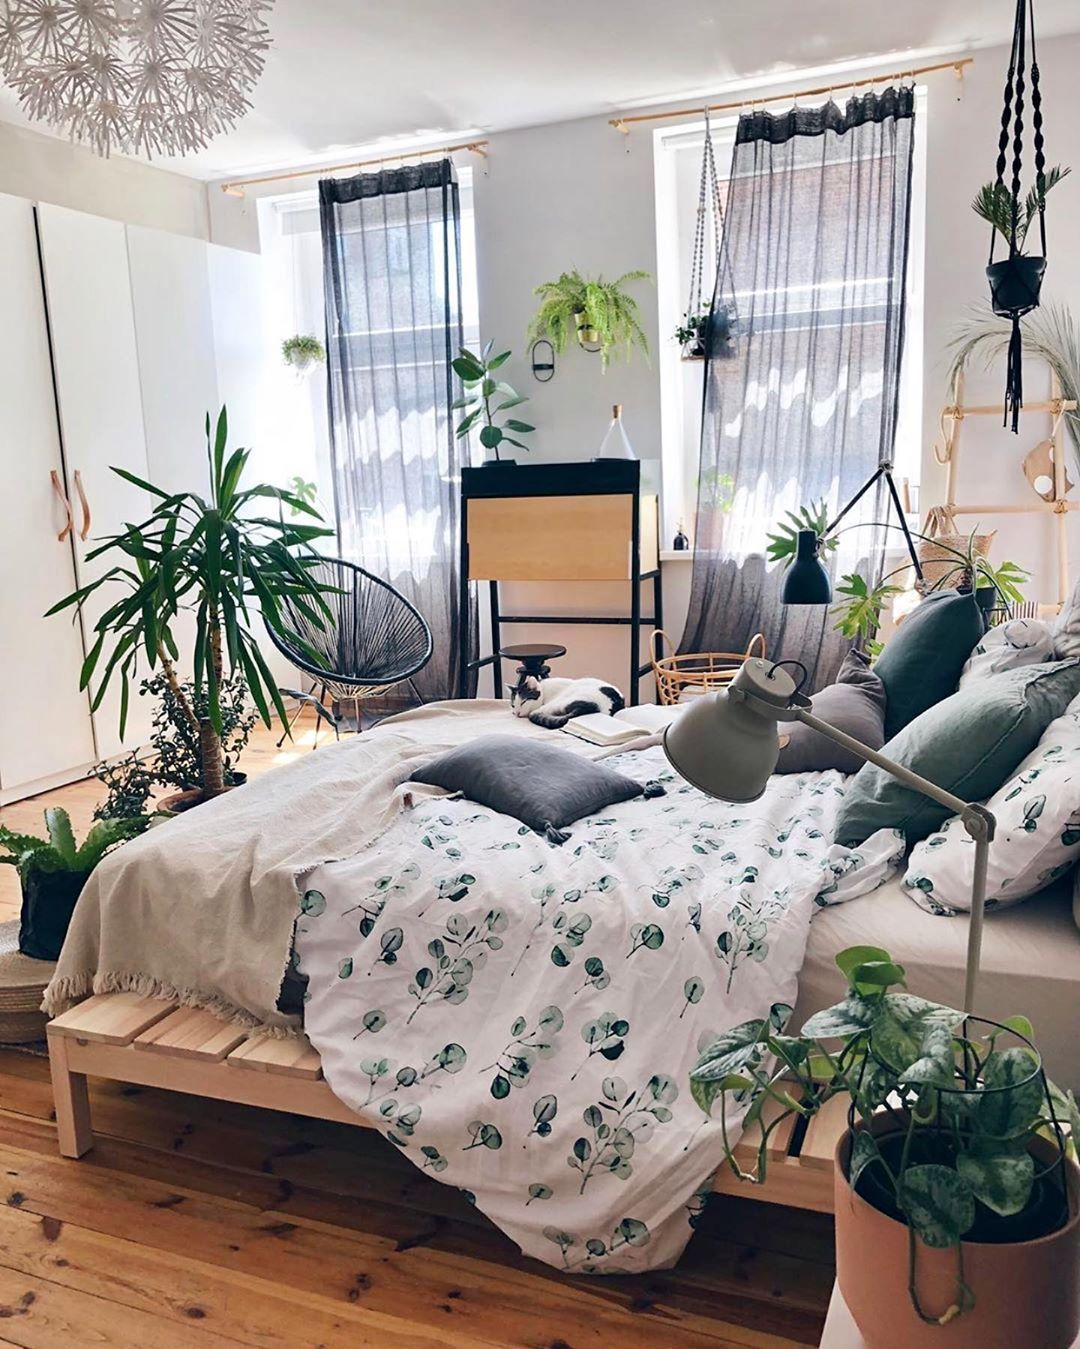 Jungle bedroom with a kitty hid360.com